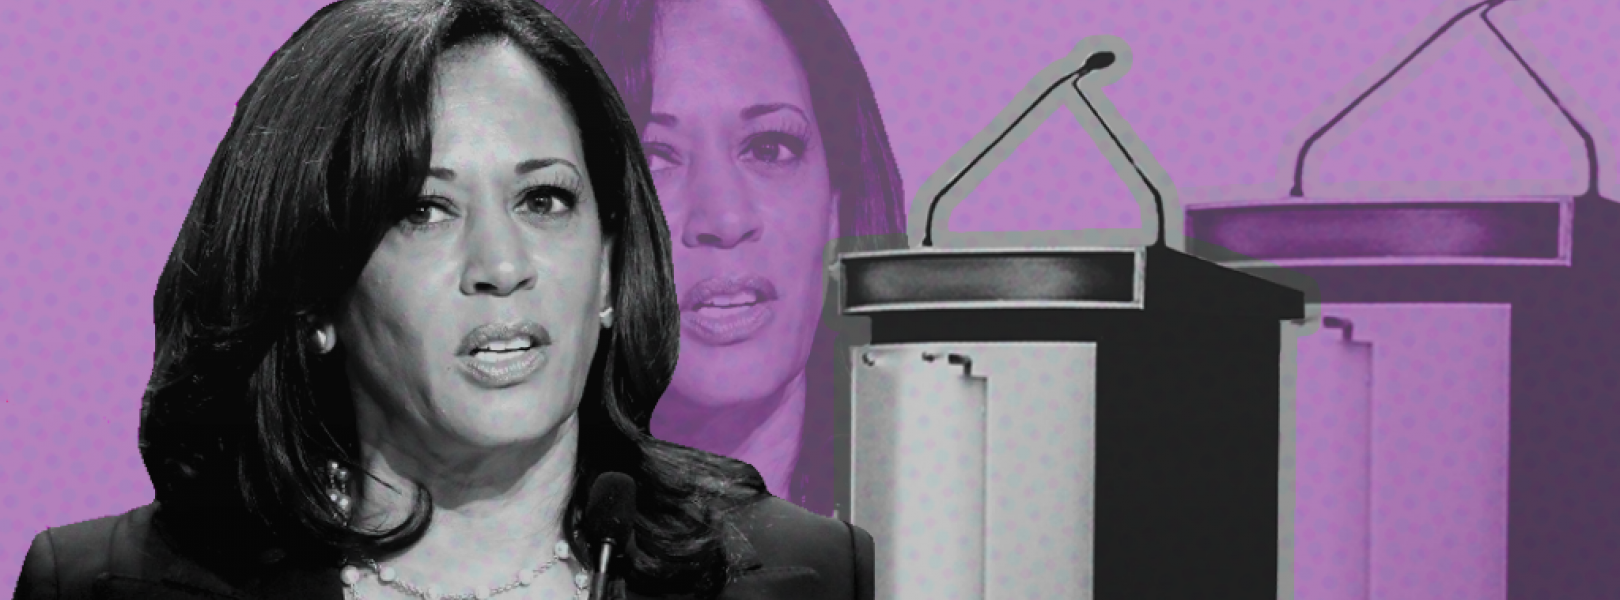 Stylized image of Kamala Harris with podiums